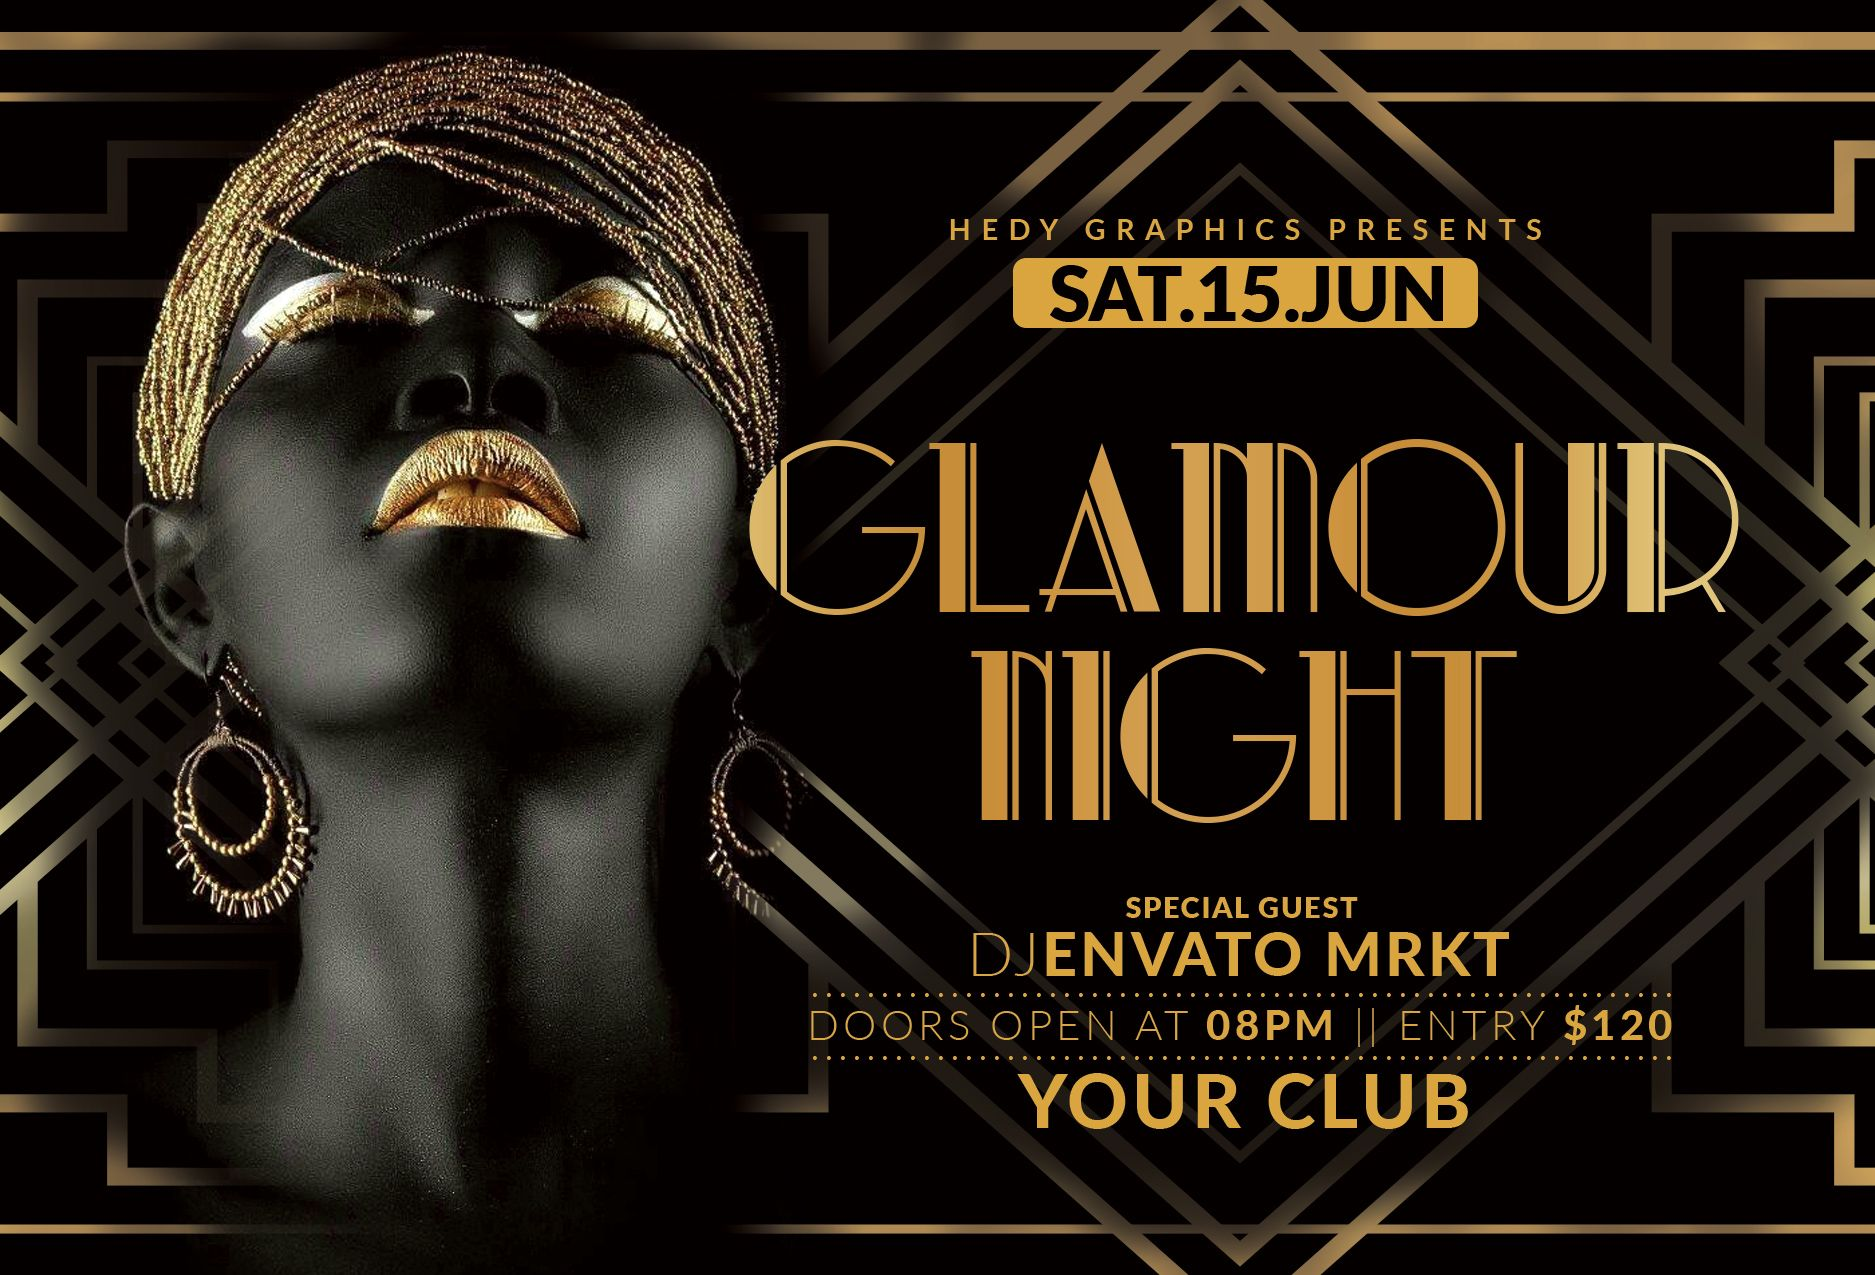 Glamour Night Flyer Screenshot 1